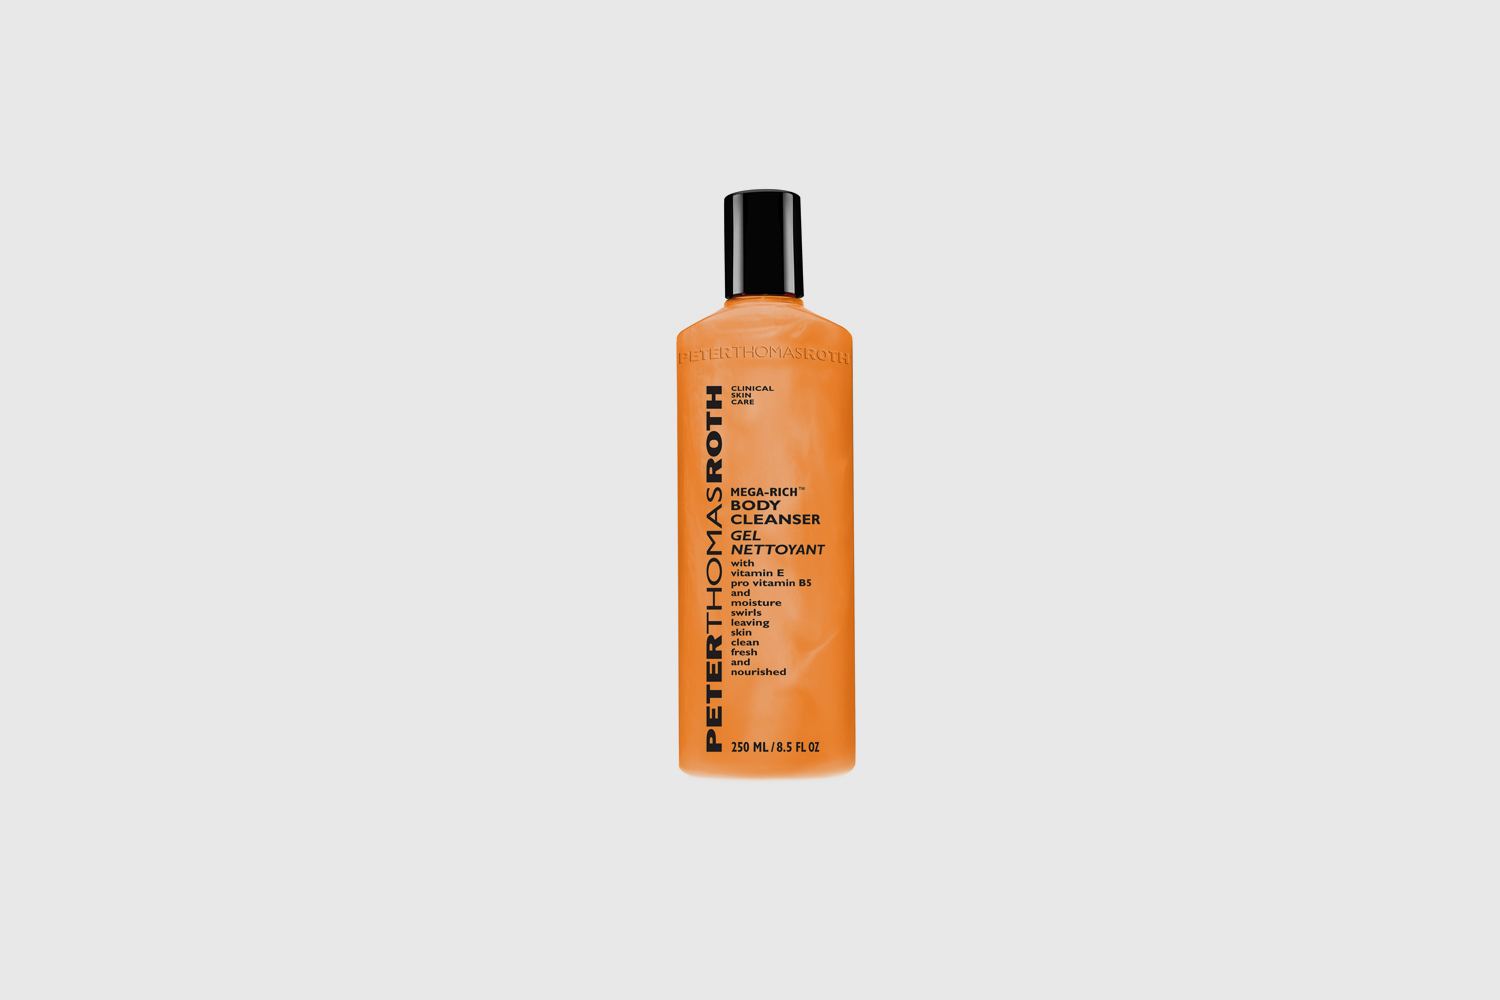 Peter Thomas Roth Mega-Rich Body Cleanser Product image